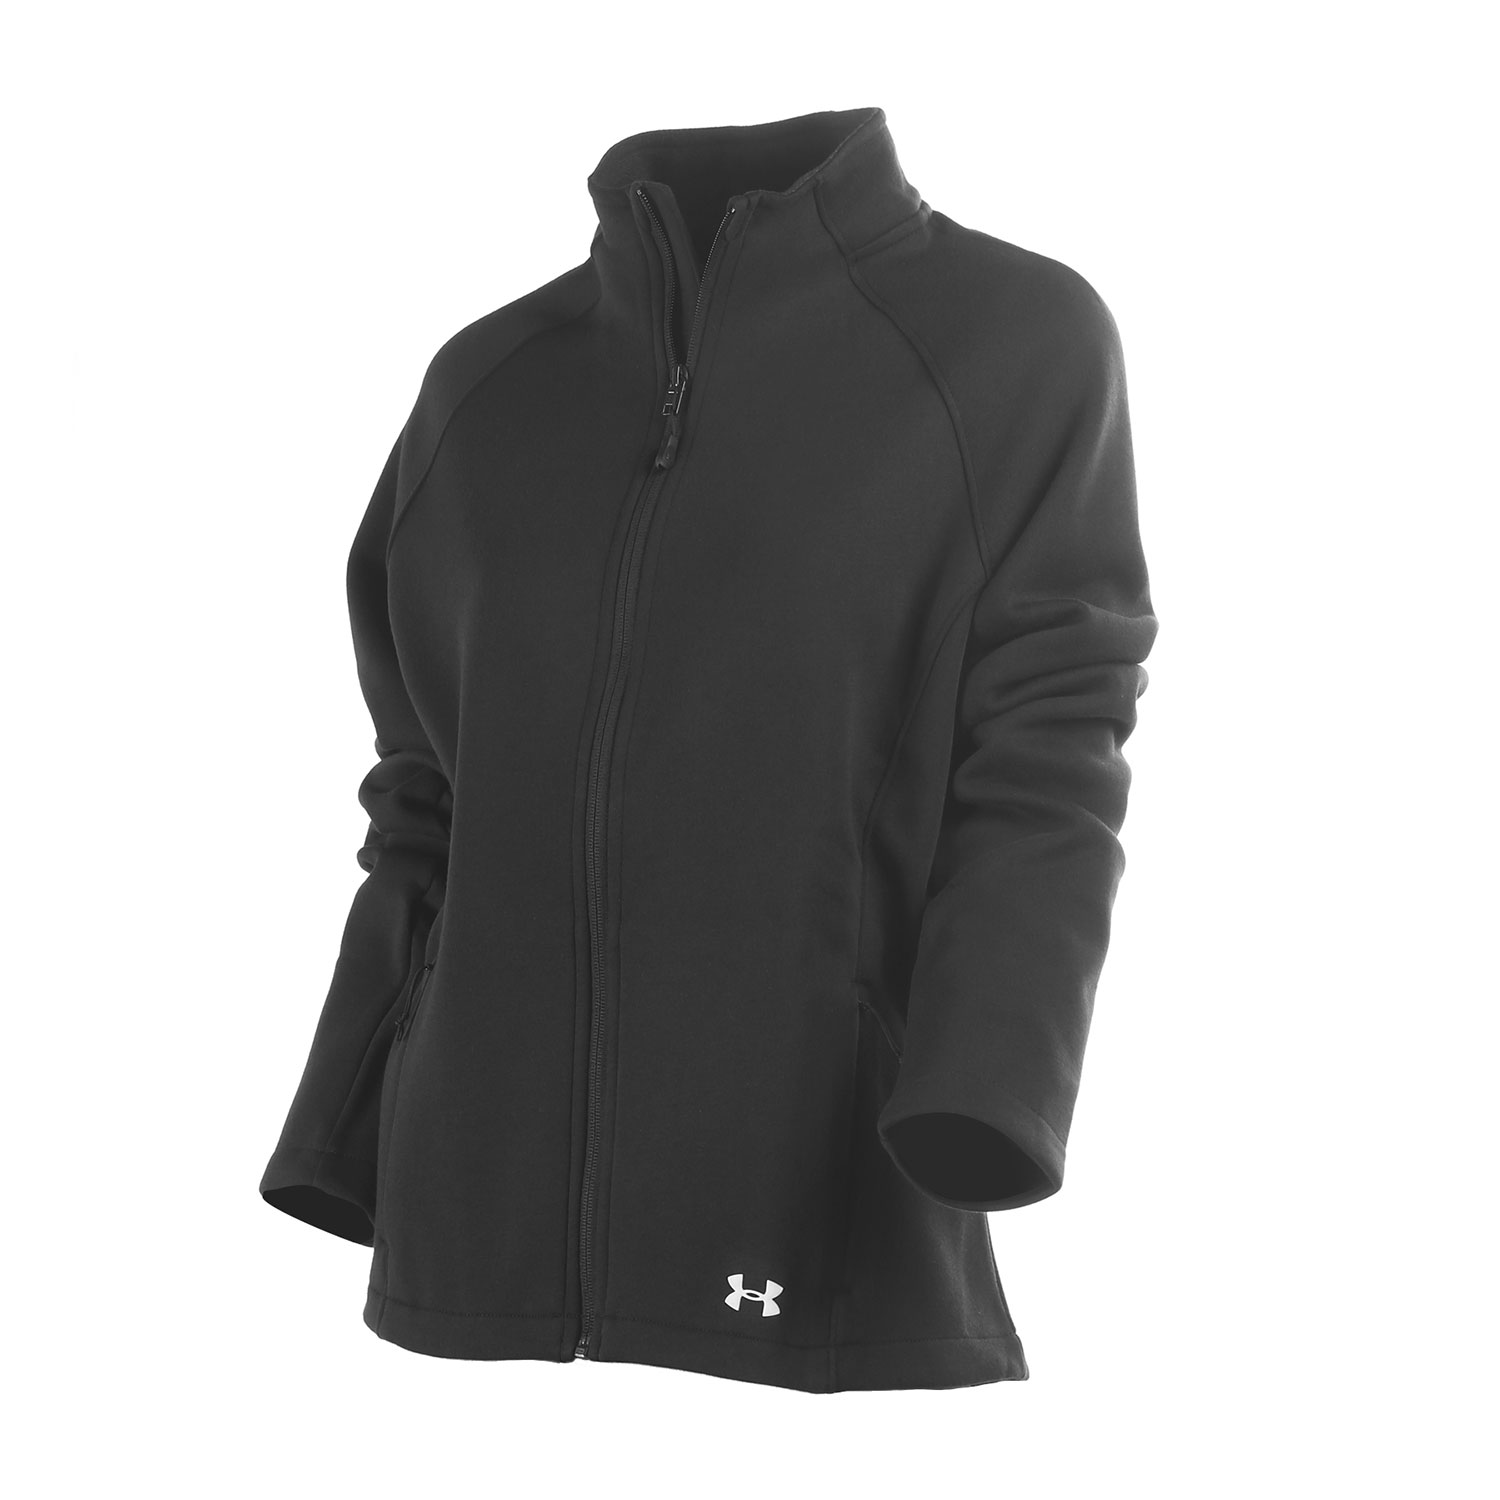 Under Armour Women's Granite Coldgear Jacket